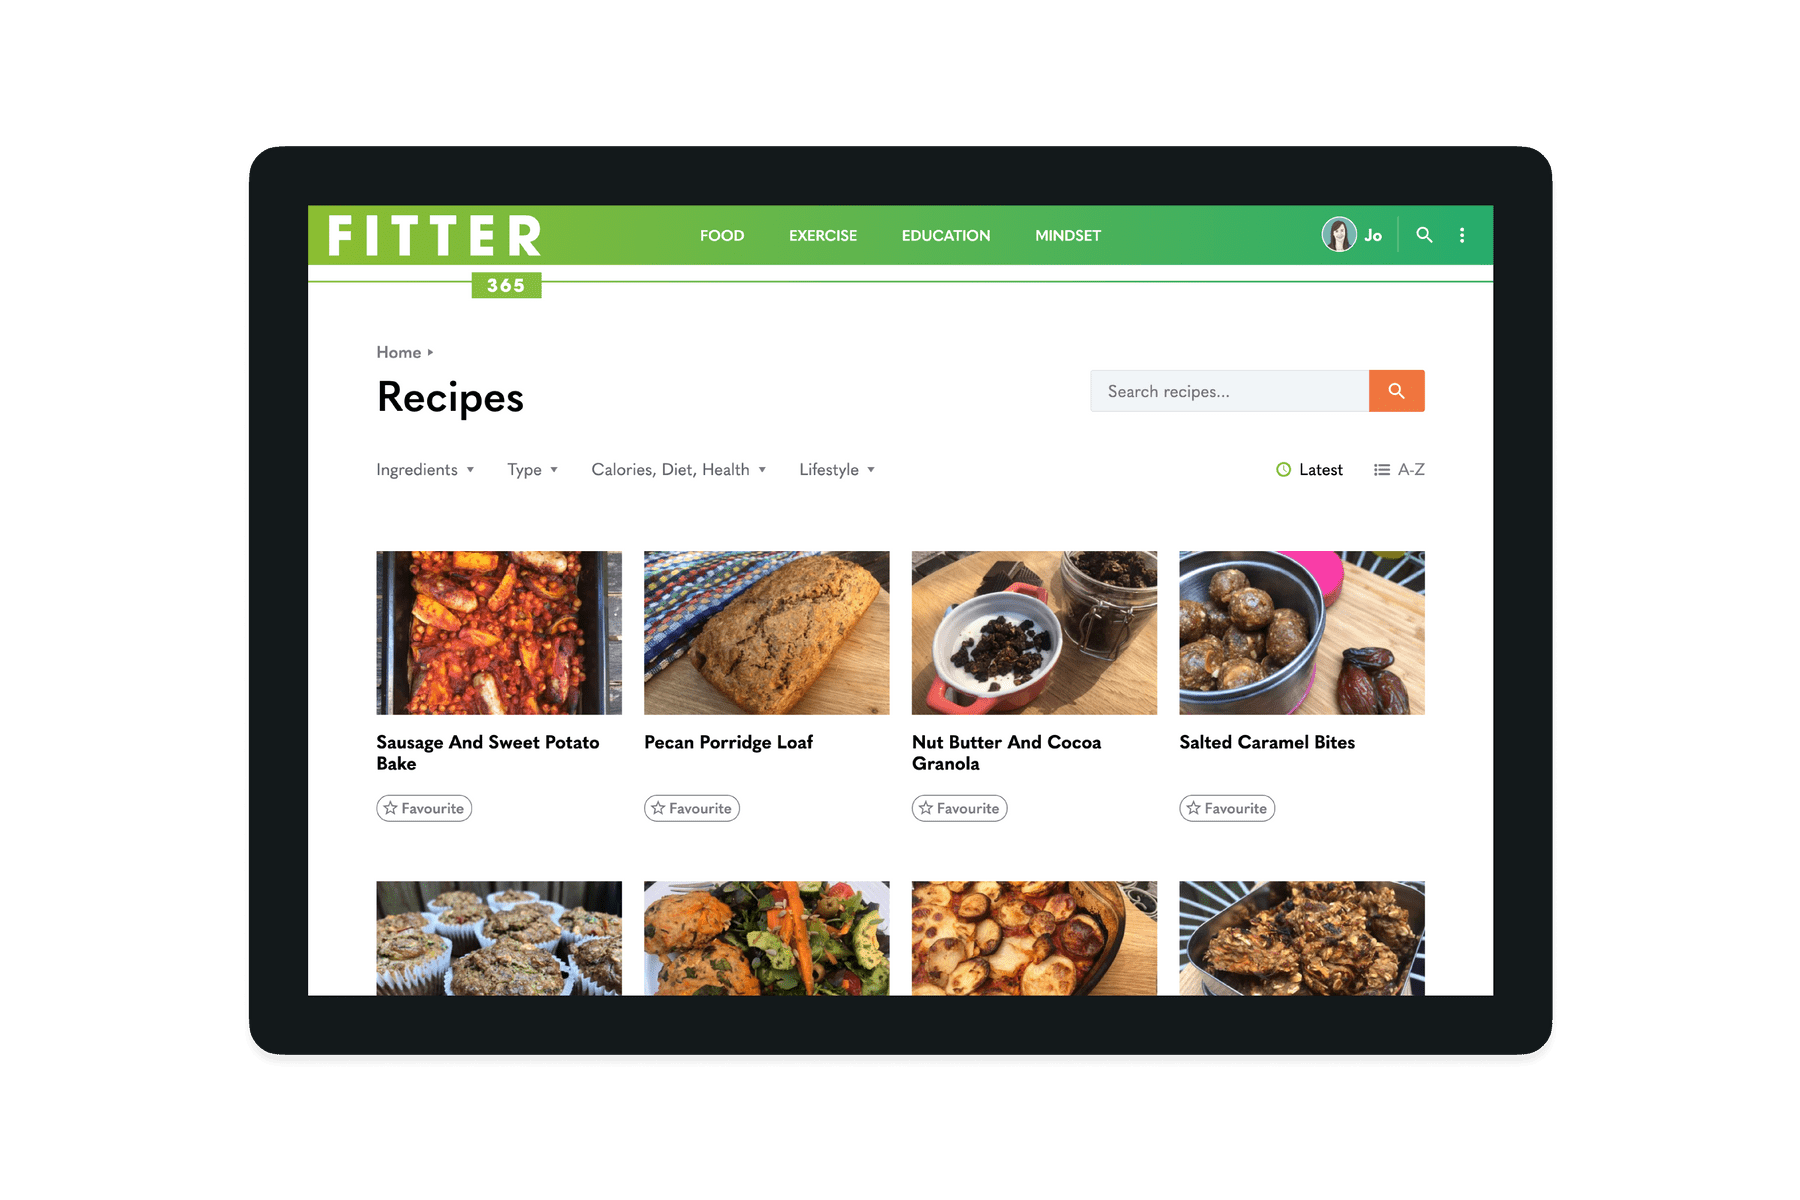 Tablet showing the recipes page of the Fitter 365 website